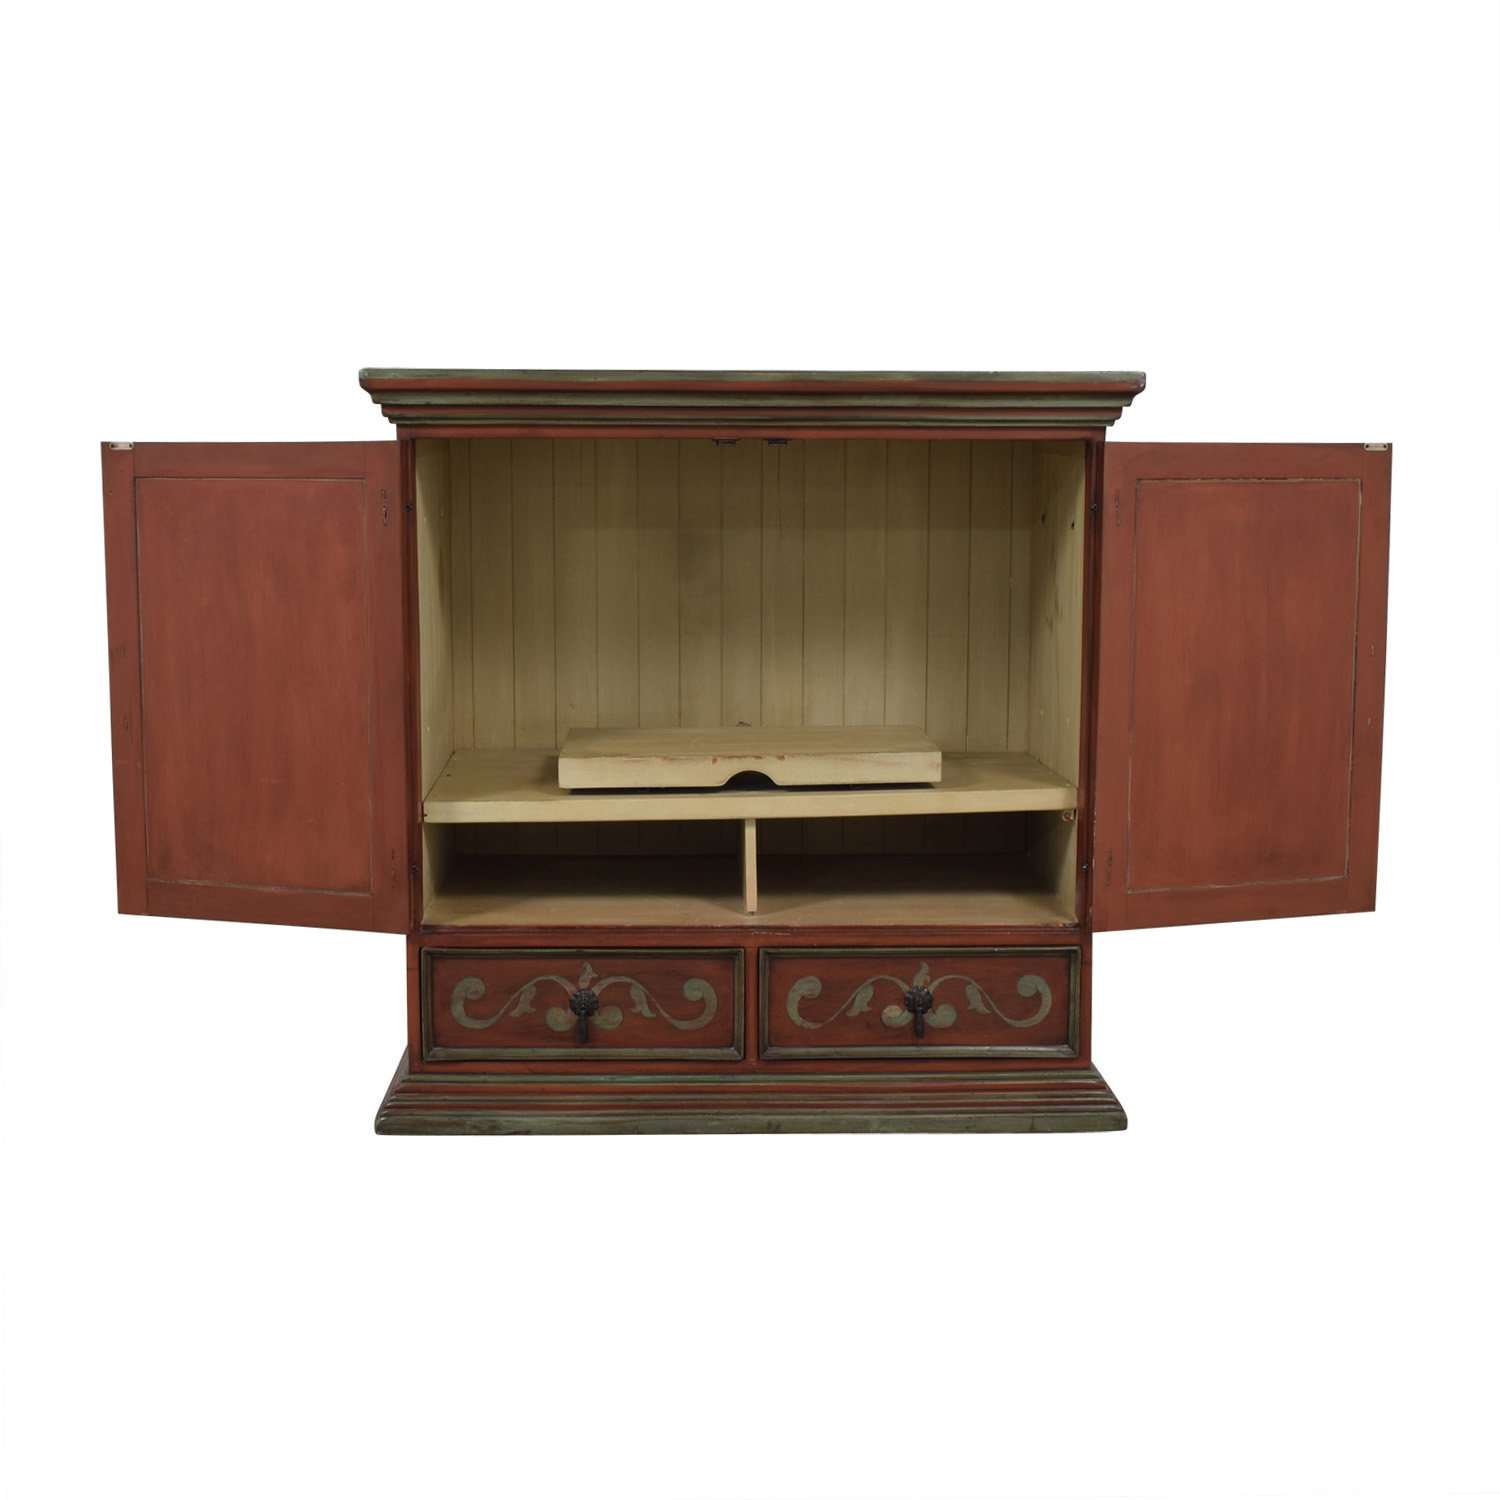 Two-Drawer Wood TV Armoire second hand